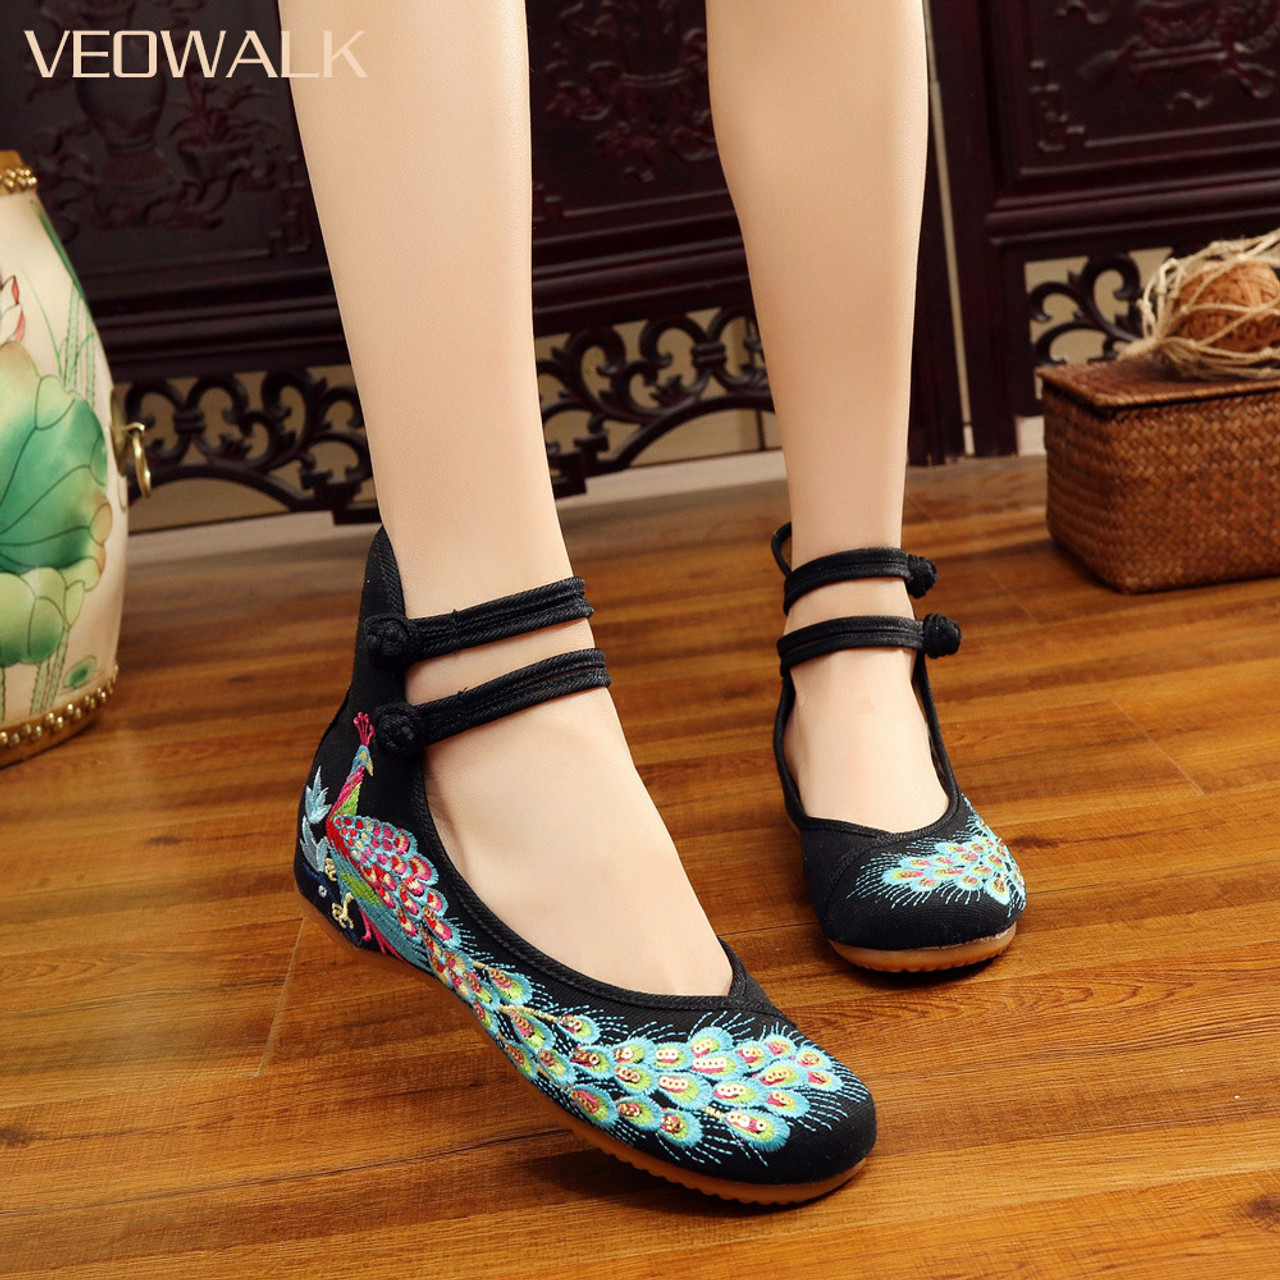 4e5c8bf888298 Veowalk Spring Handmade Woman Ballet Flats Shoes Sequined Peacock  Embroidery Shoes Women Old Peking Casual Cloth Dancing Shoes